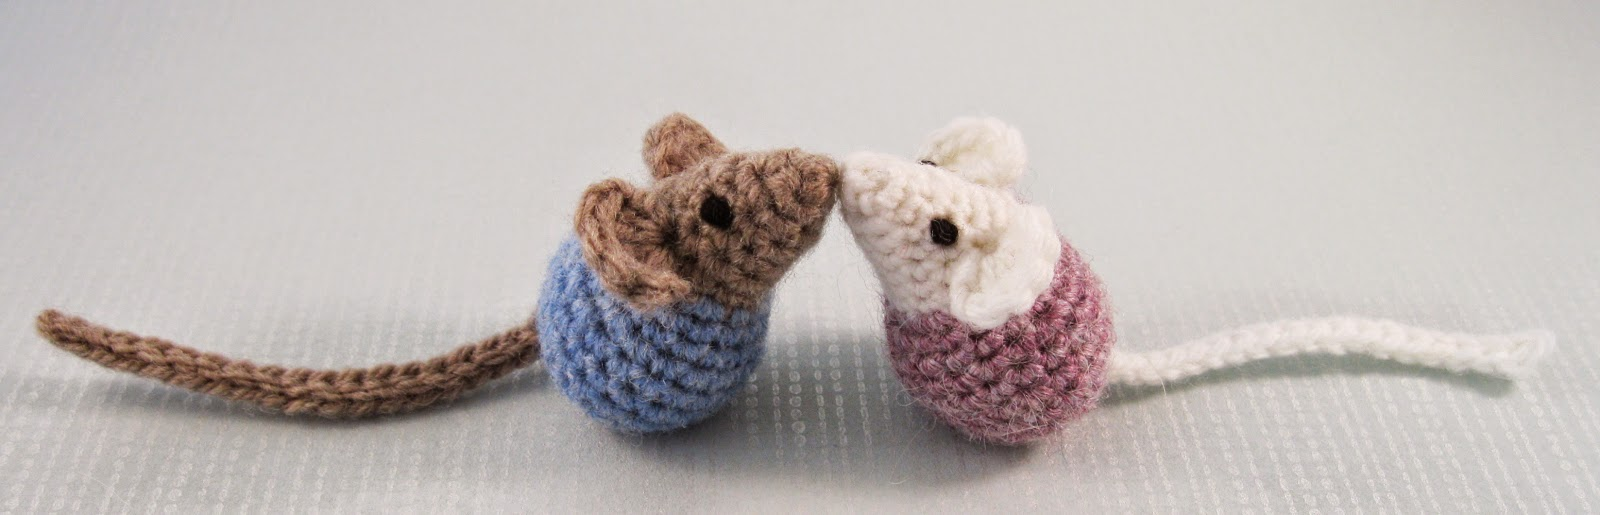 LucyRavenscar - Crochet Creatures: Little Kissing Mice - free ...